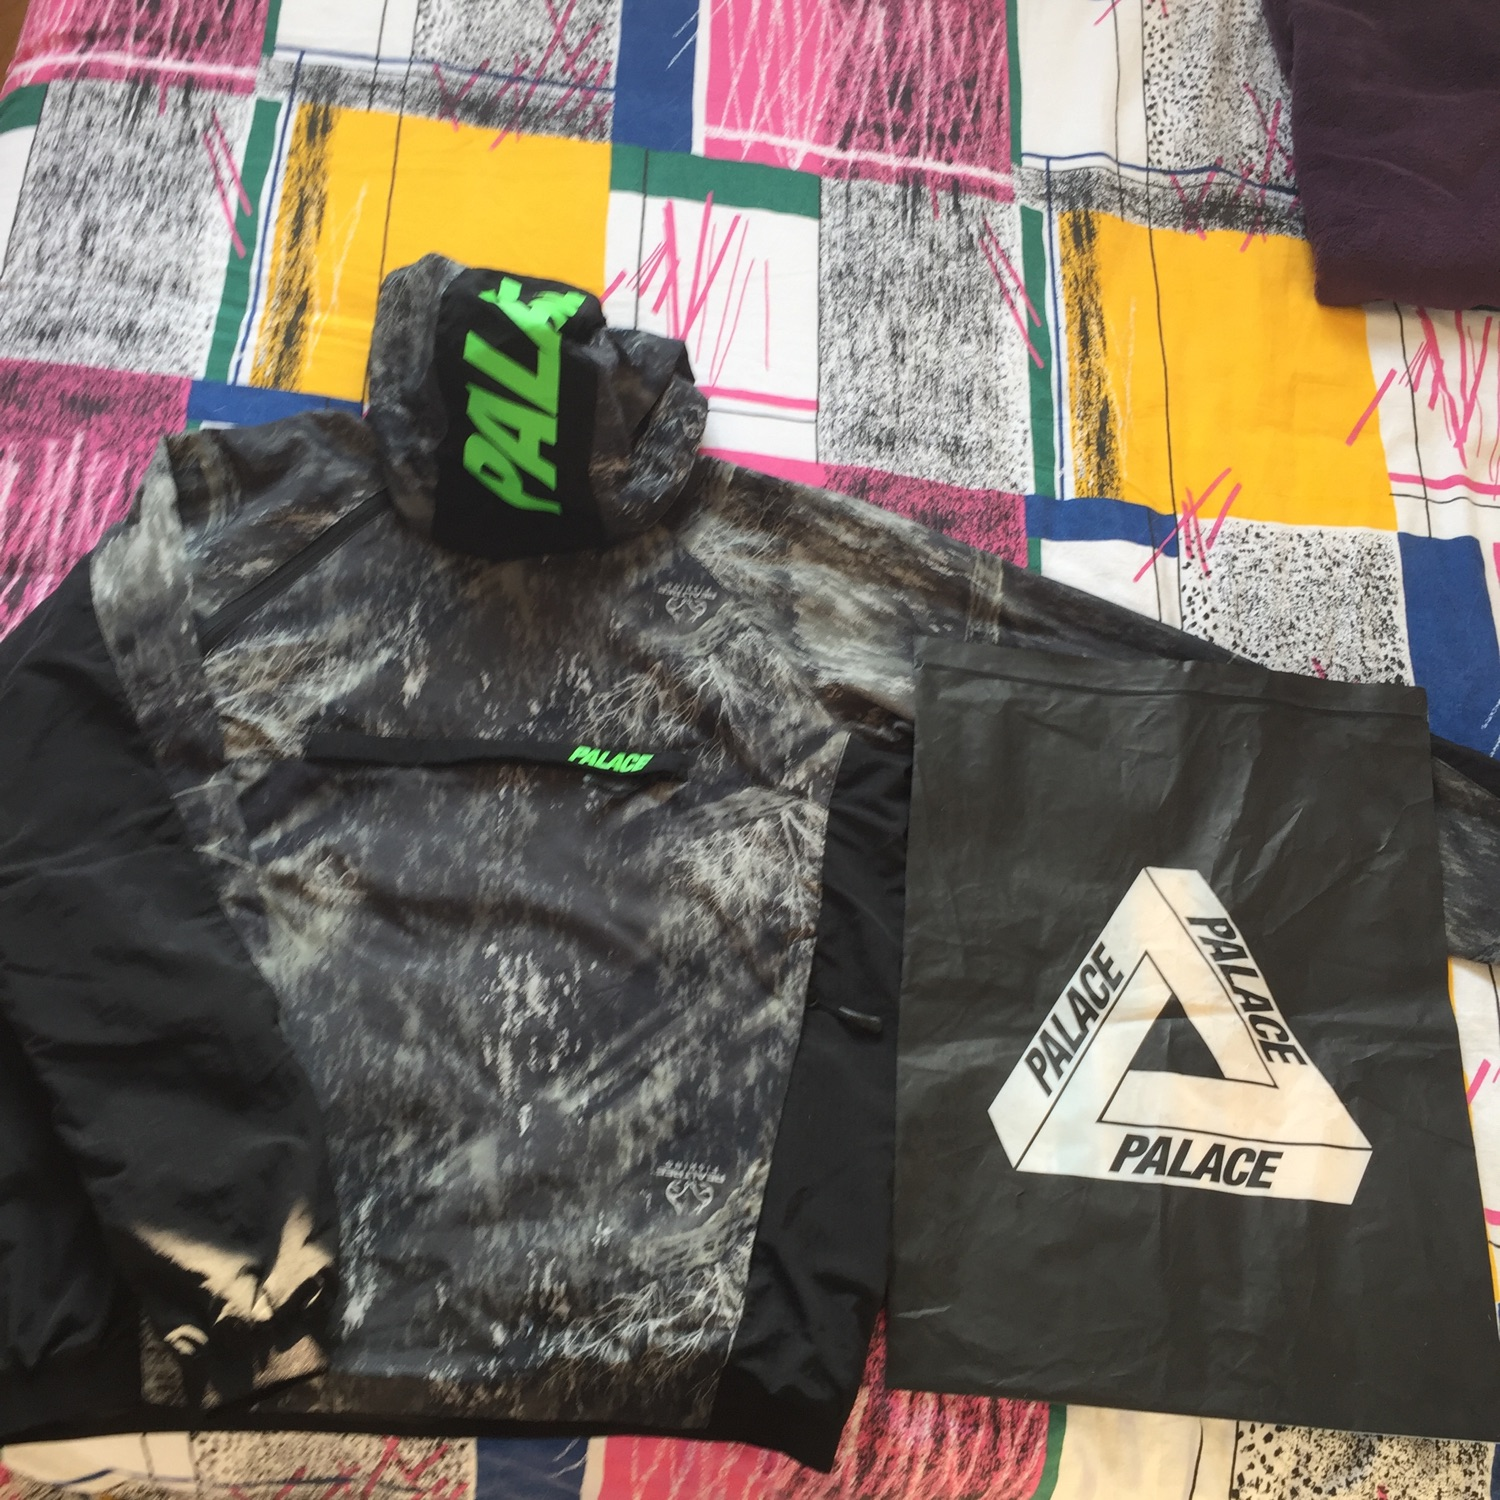 Palace Asymetric Real Tree Shell Top Black